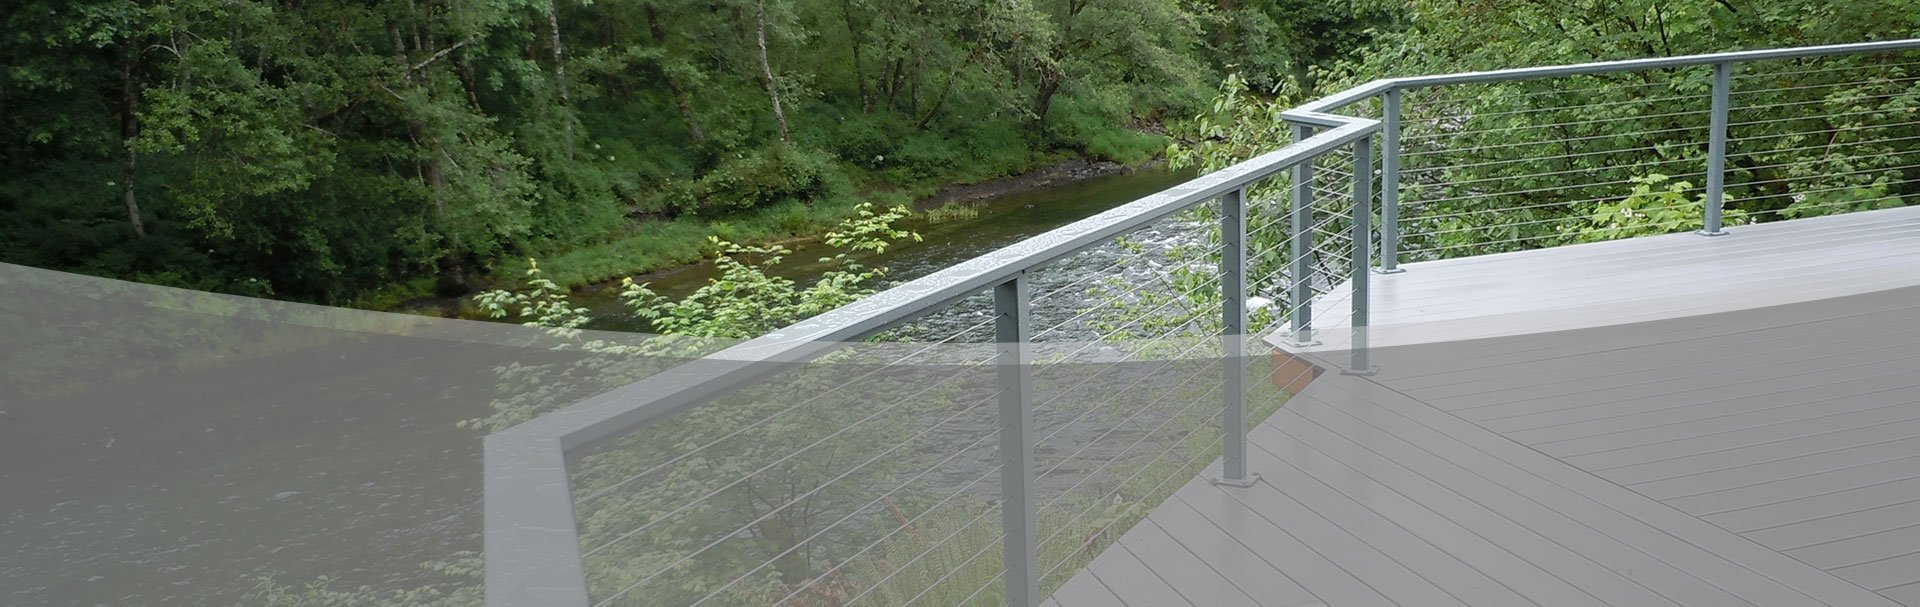 Aluminum Railing   Stainless Cable Solutions